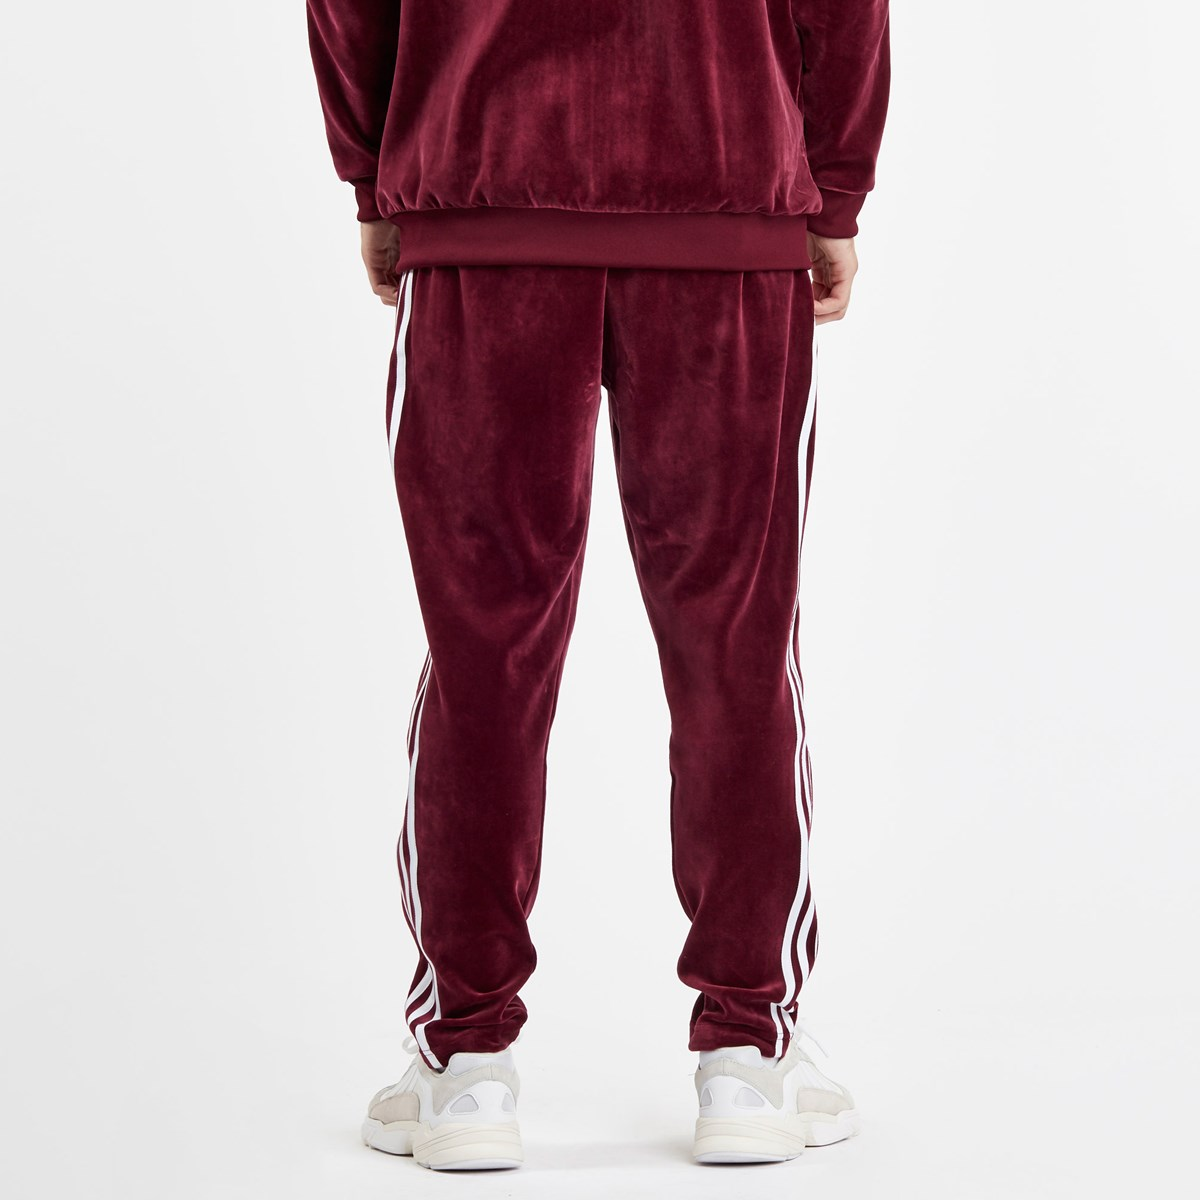 Details about [DH5784] Mens Adidas Originals Velour Beckenbauer Track Pants